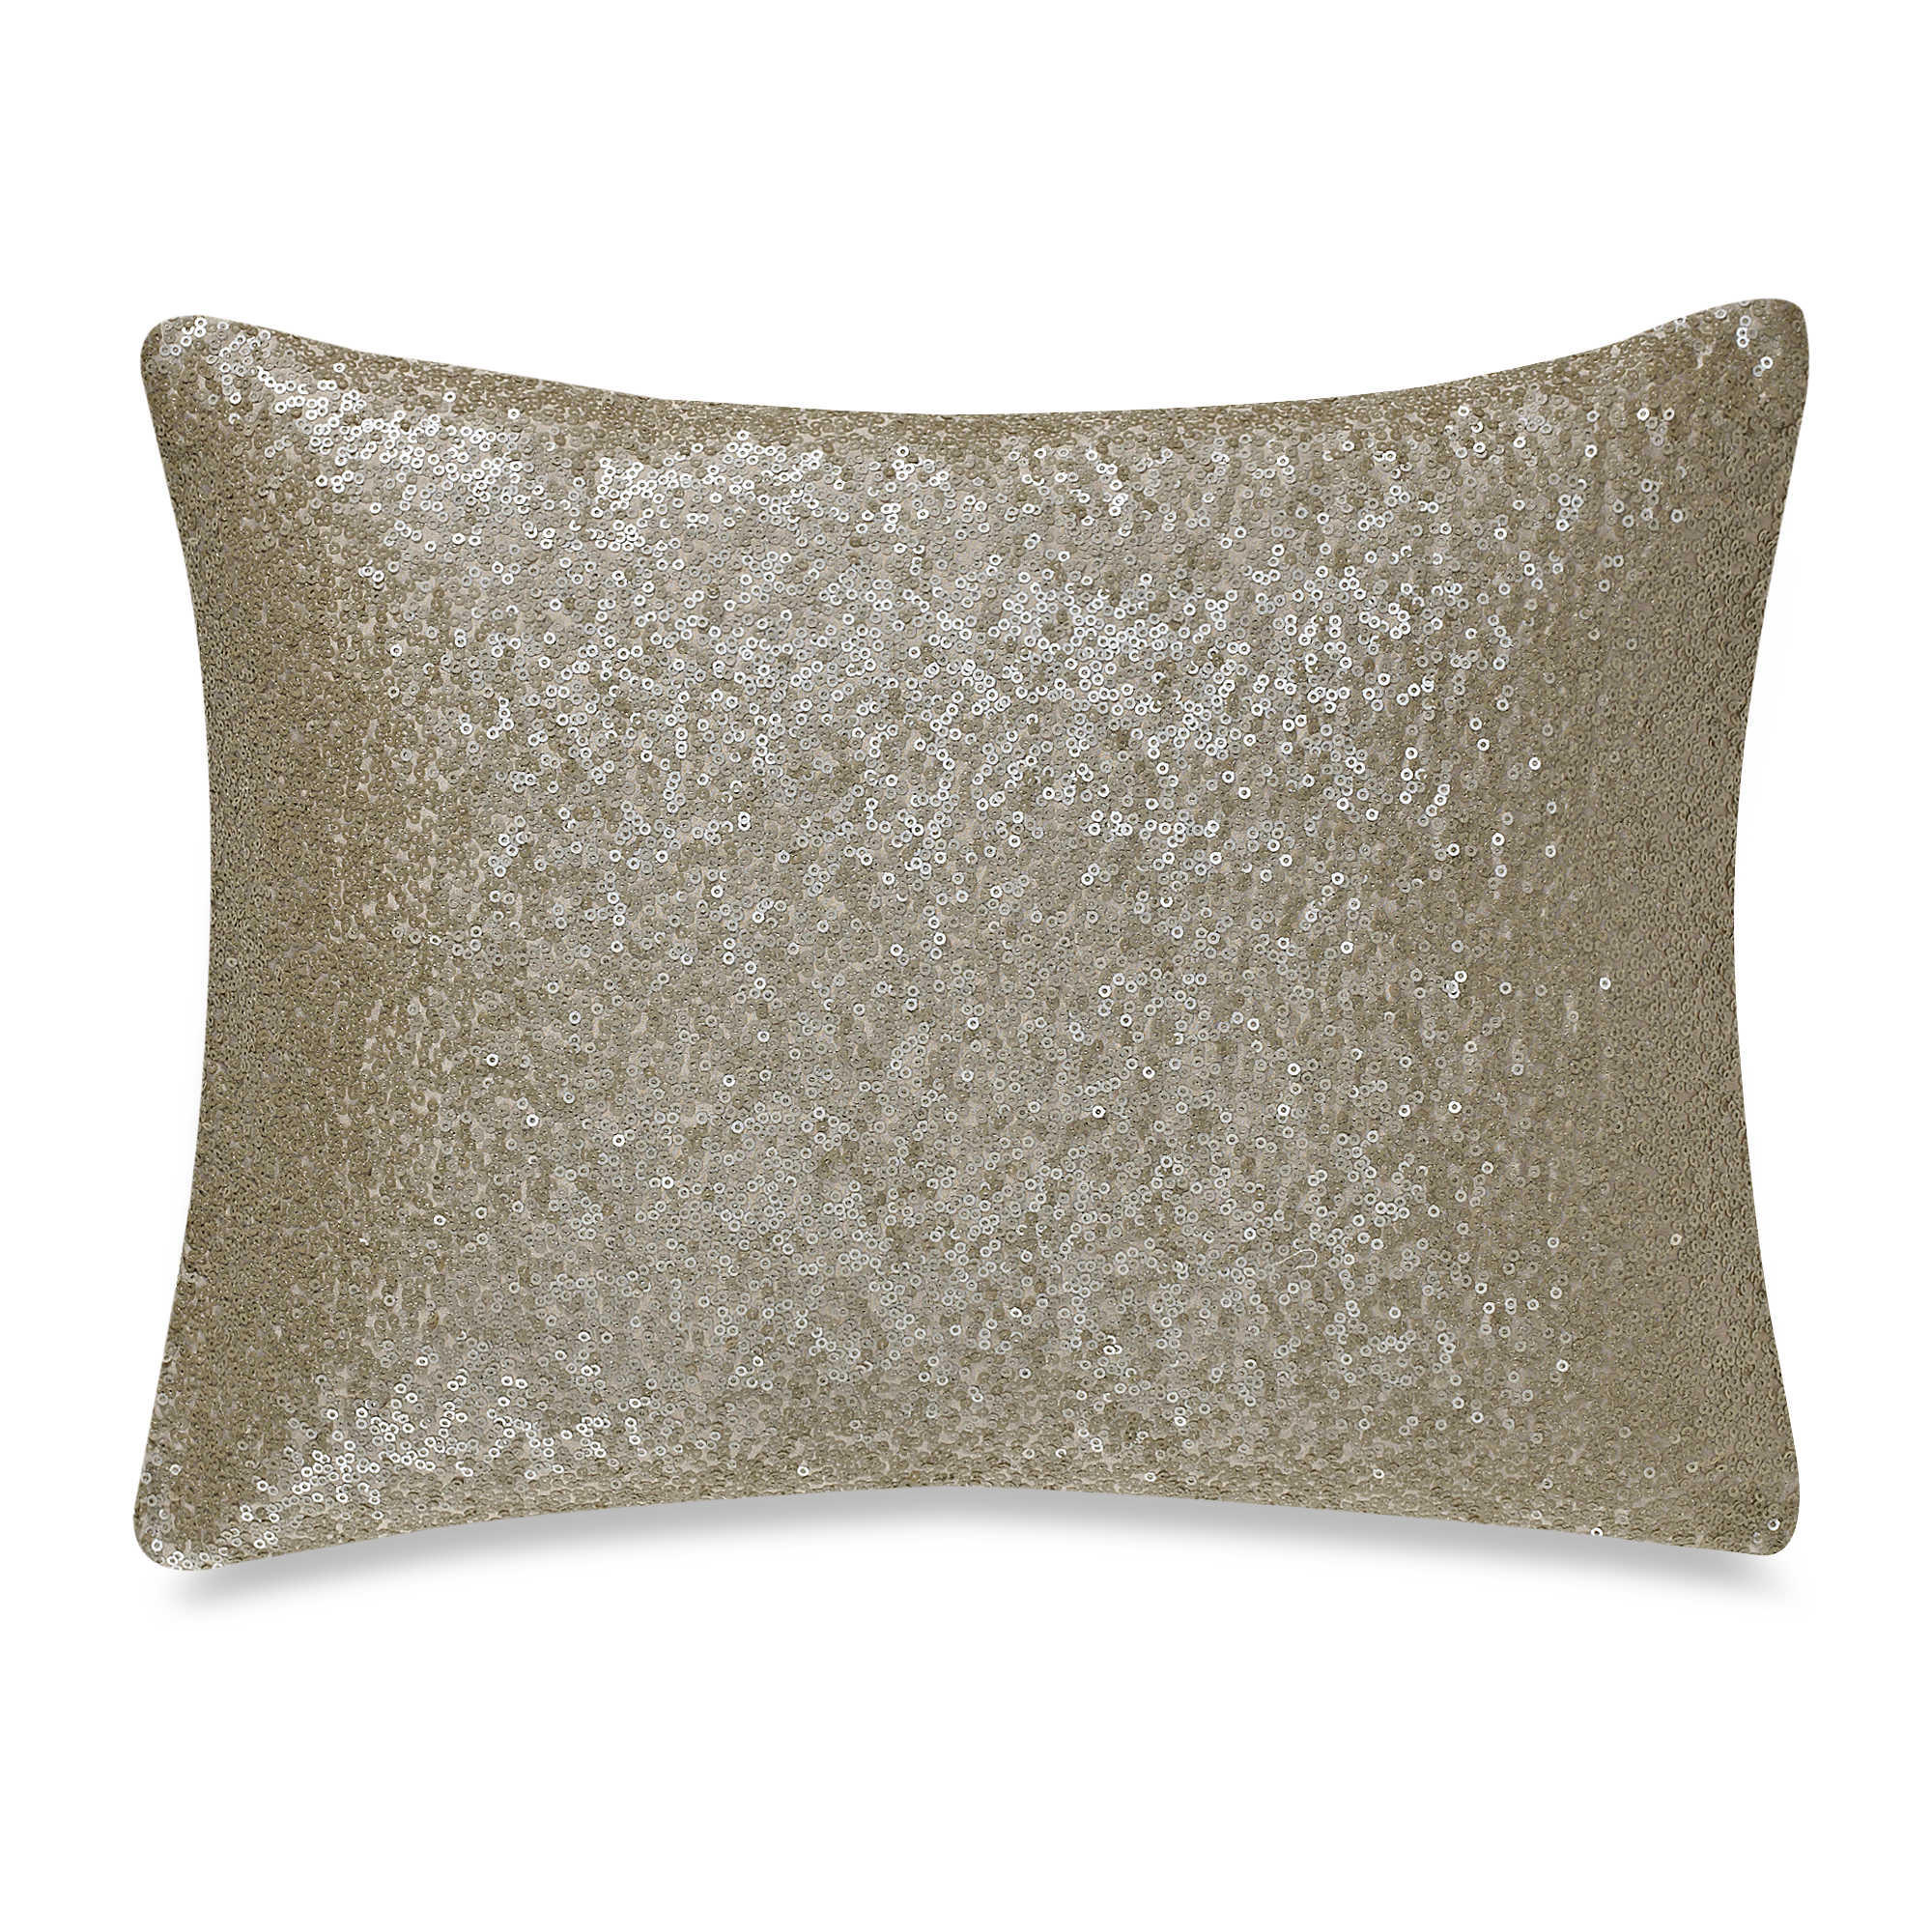 Nicole Miller Home Decorative Pillows : Nicole Miller Lexington Sequin from Bed Bath & Beyond